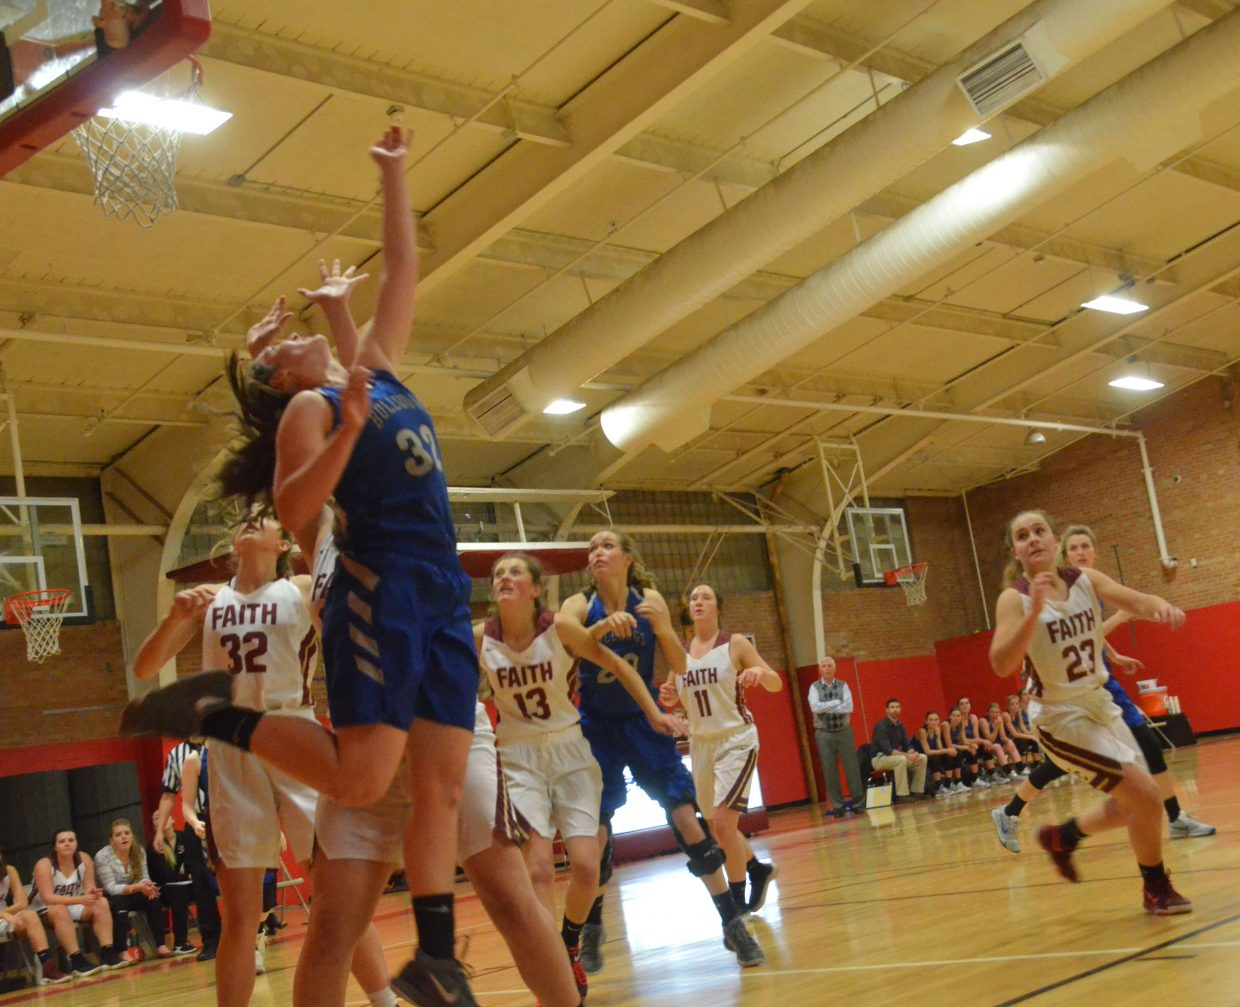 Moffat County High School's Tiffany Hildebrandt angles a shot over her shoulder against Faith Christian.